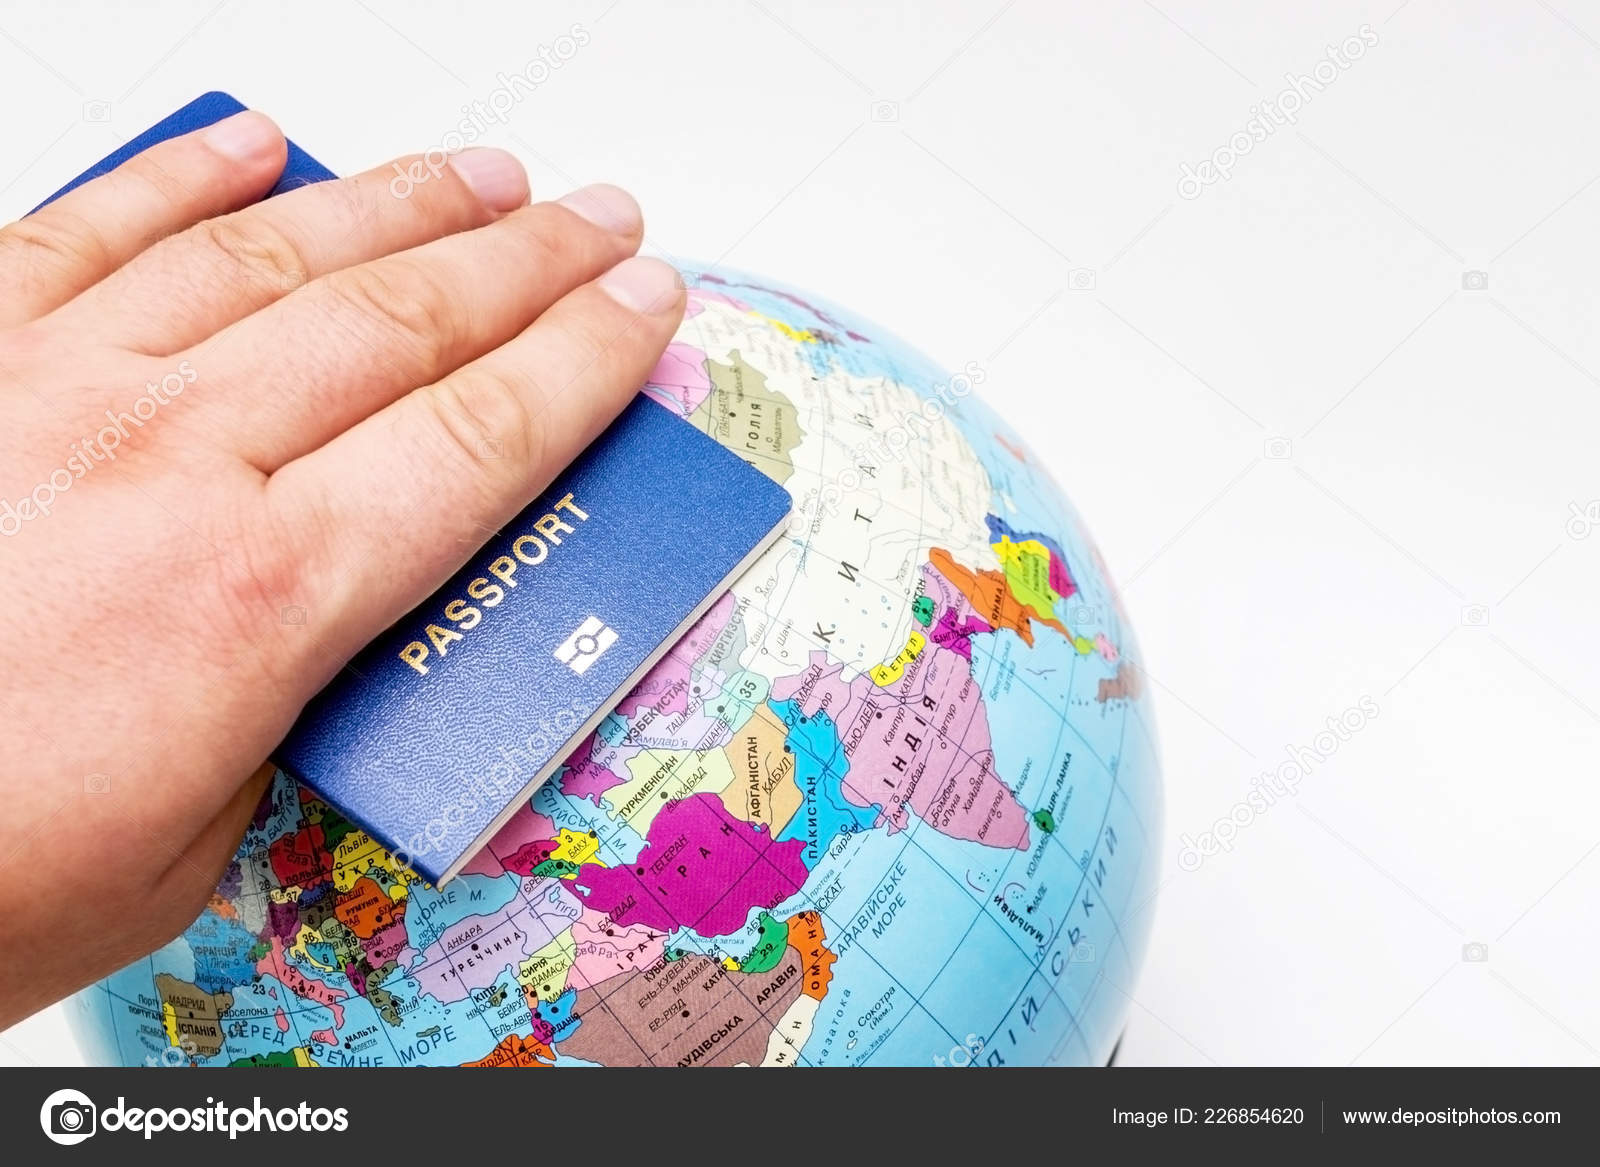 Pports Air Tickets Cards Map – Stock Editorial Photo © kirilyukrm on